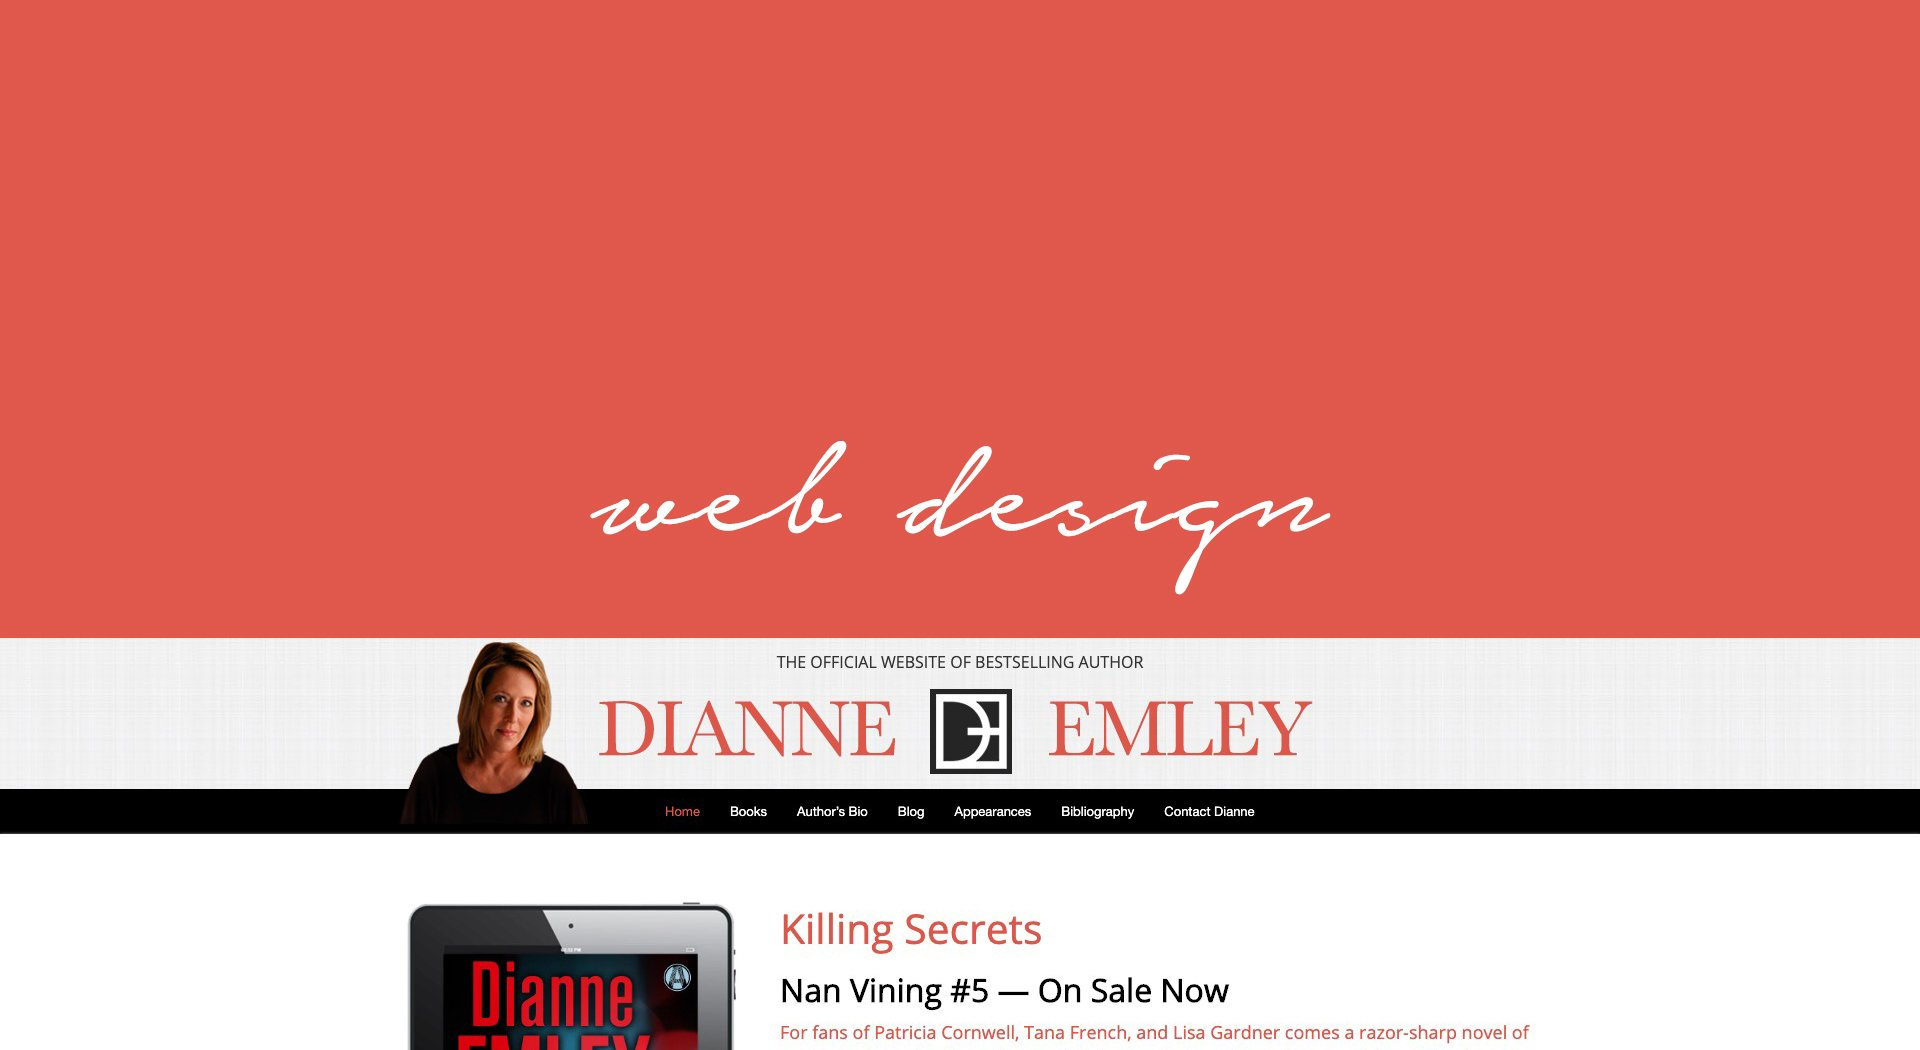 Web Design & Development Bucks County, PA.